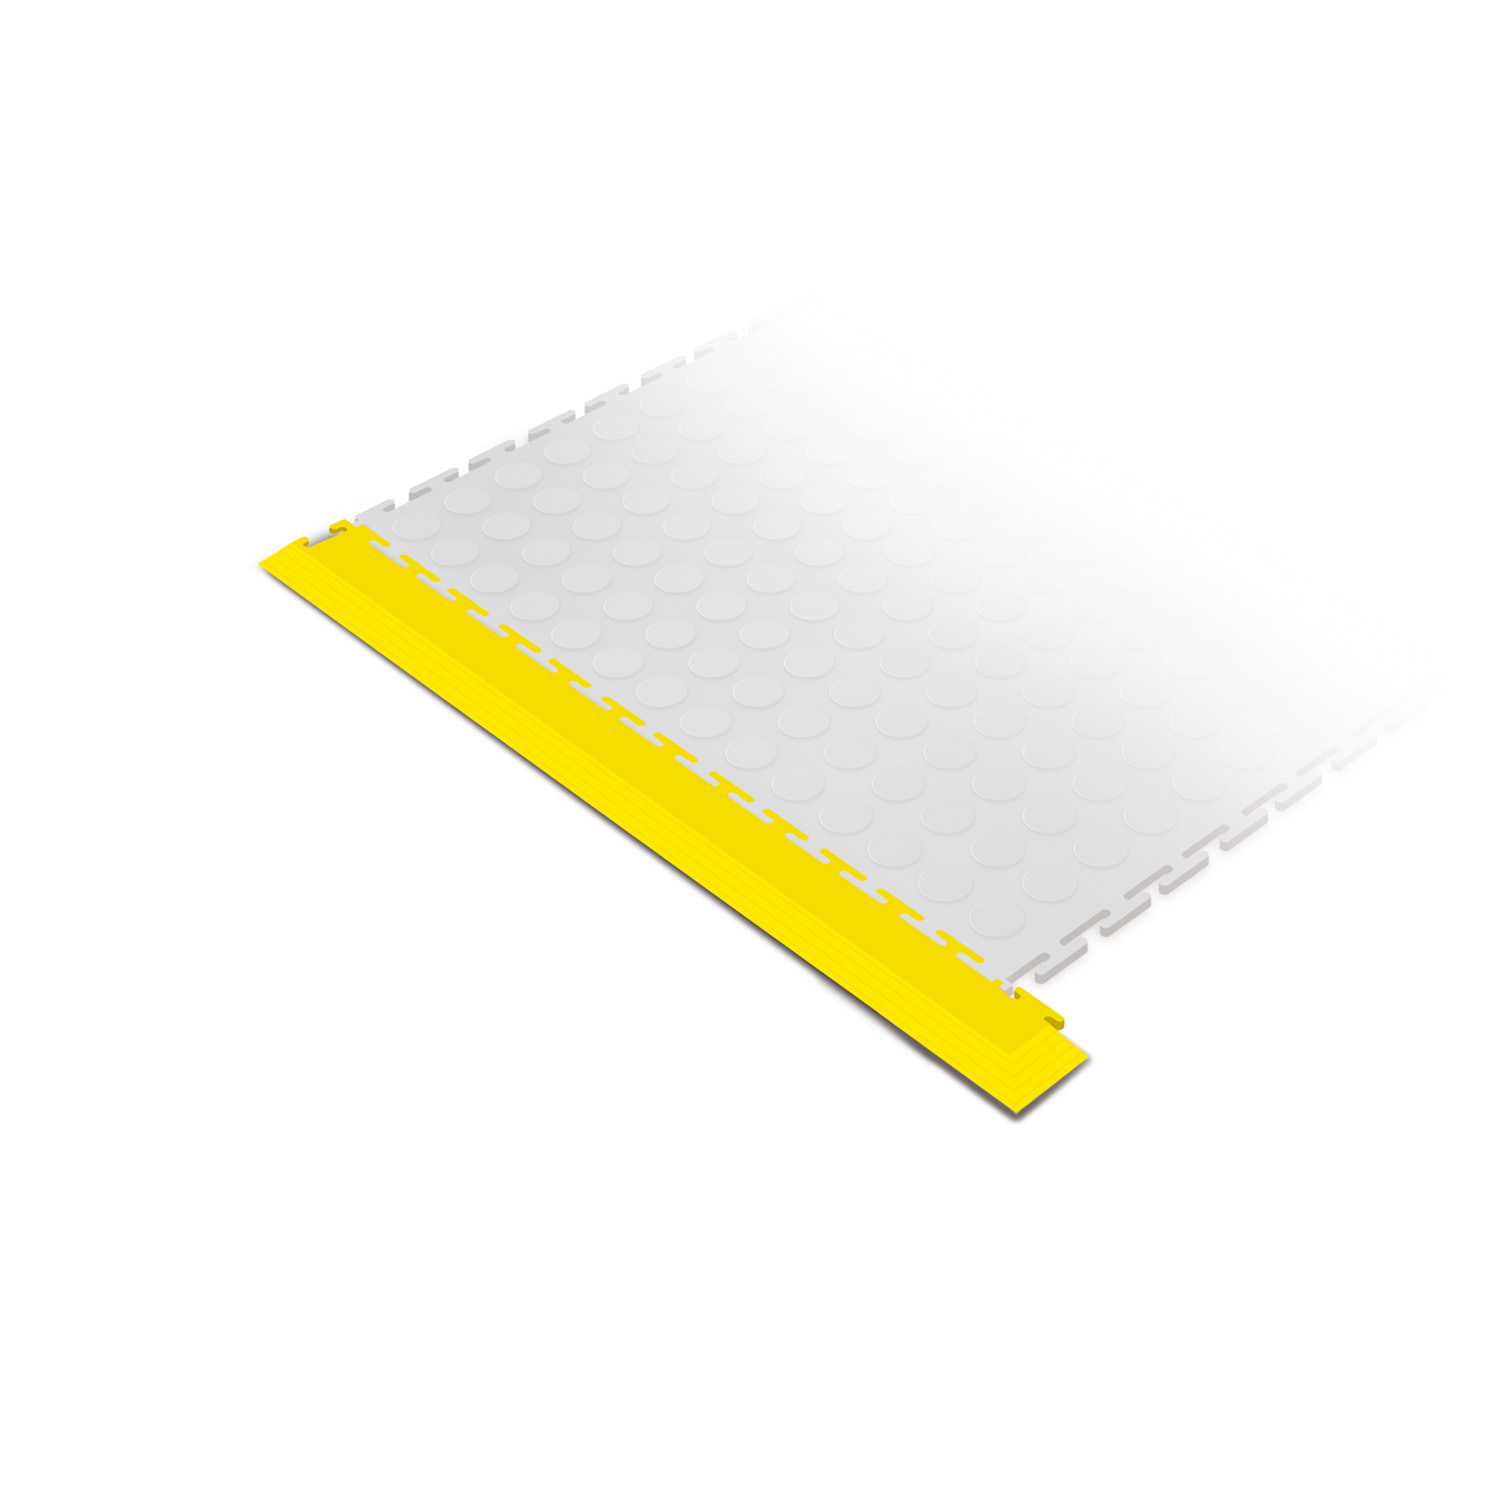 Heavy-duty corner edge ramp tile (yellow)